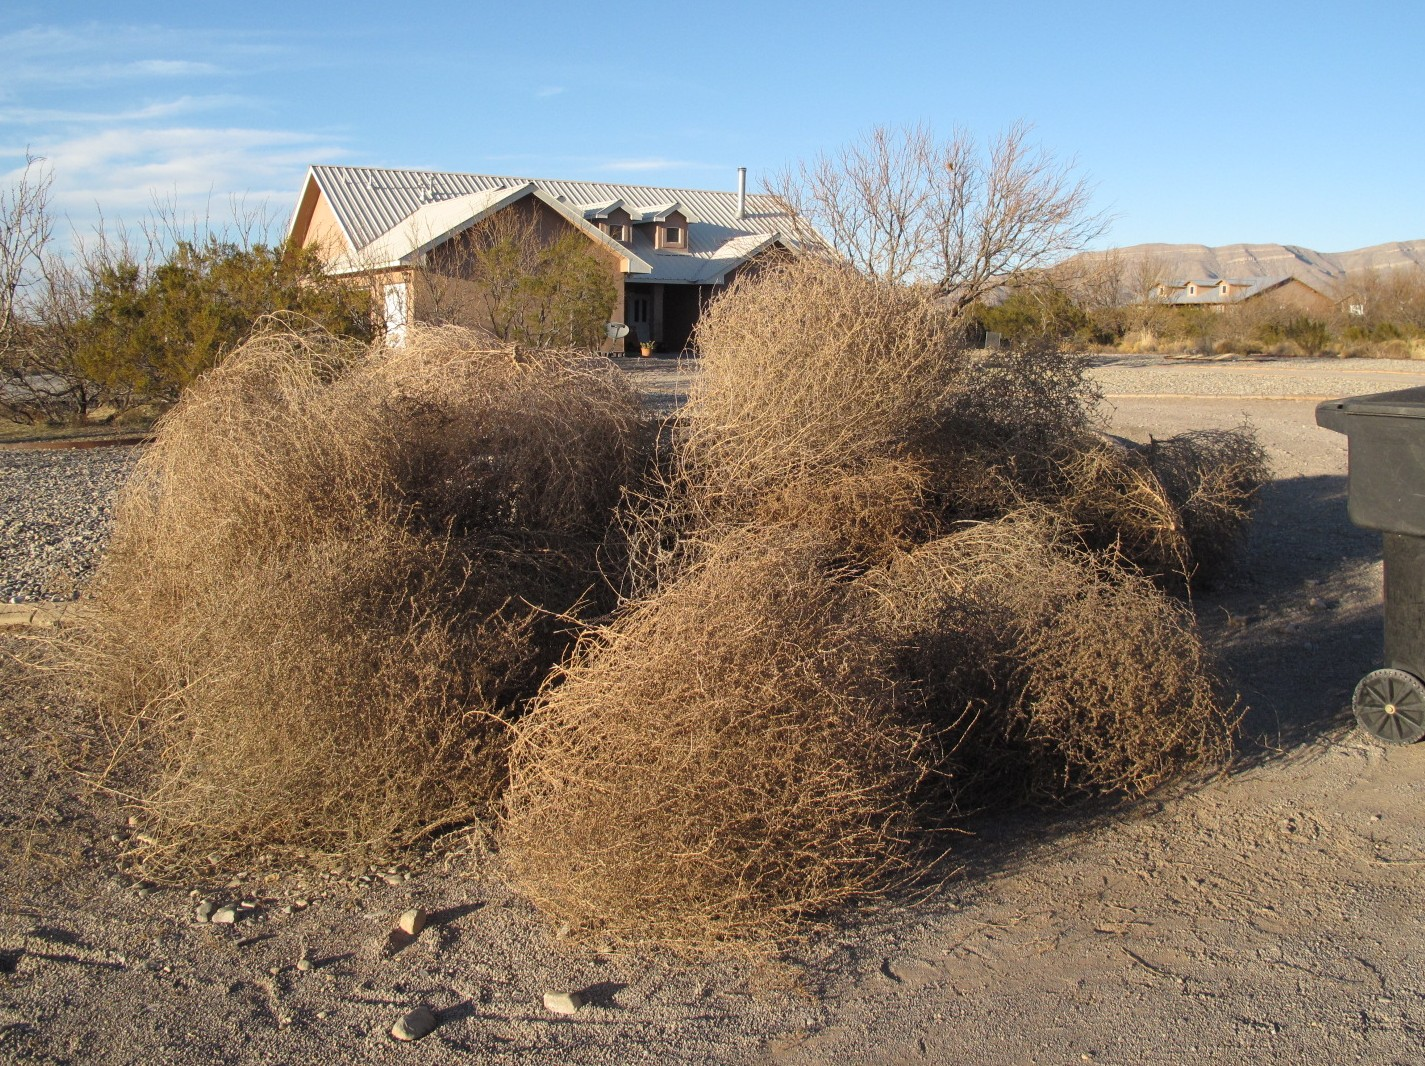 Clayworks By Kim Detmers: FREE Tumble Weeds